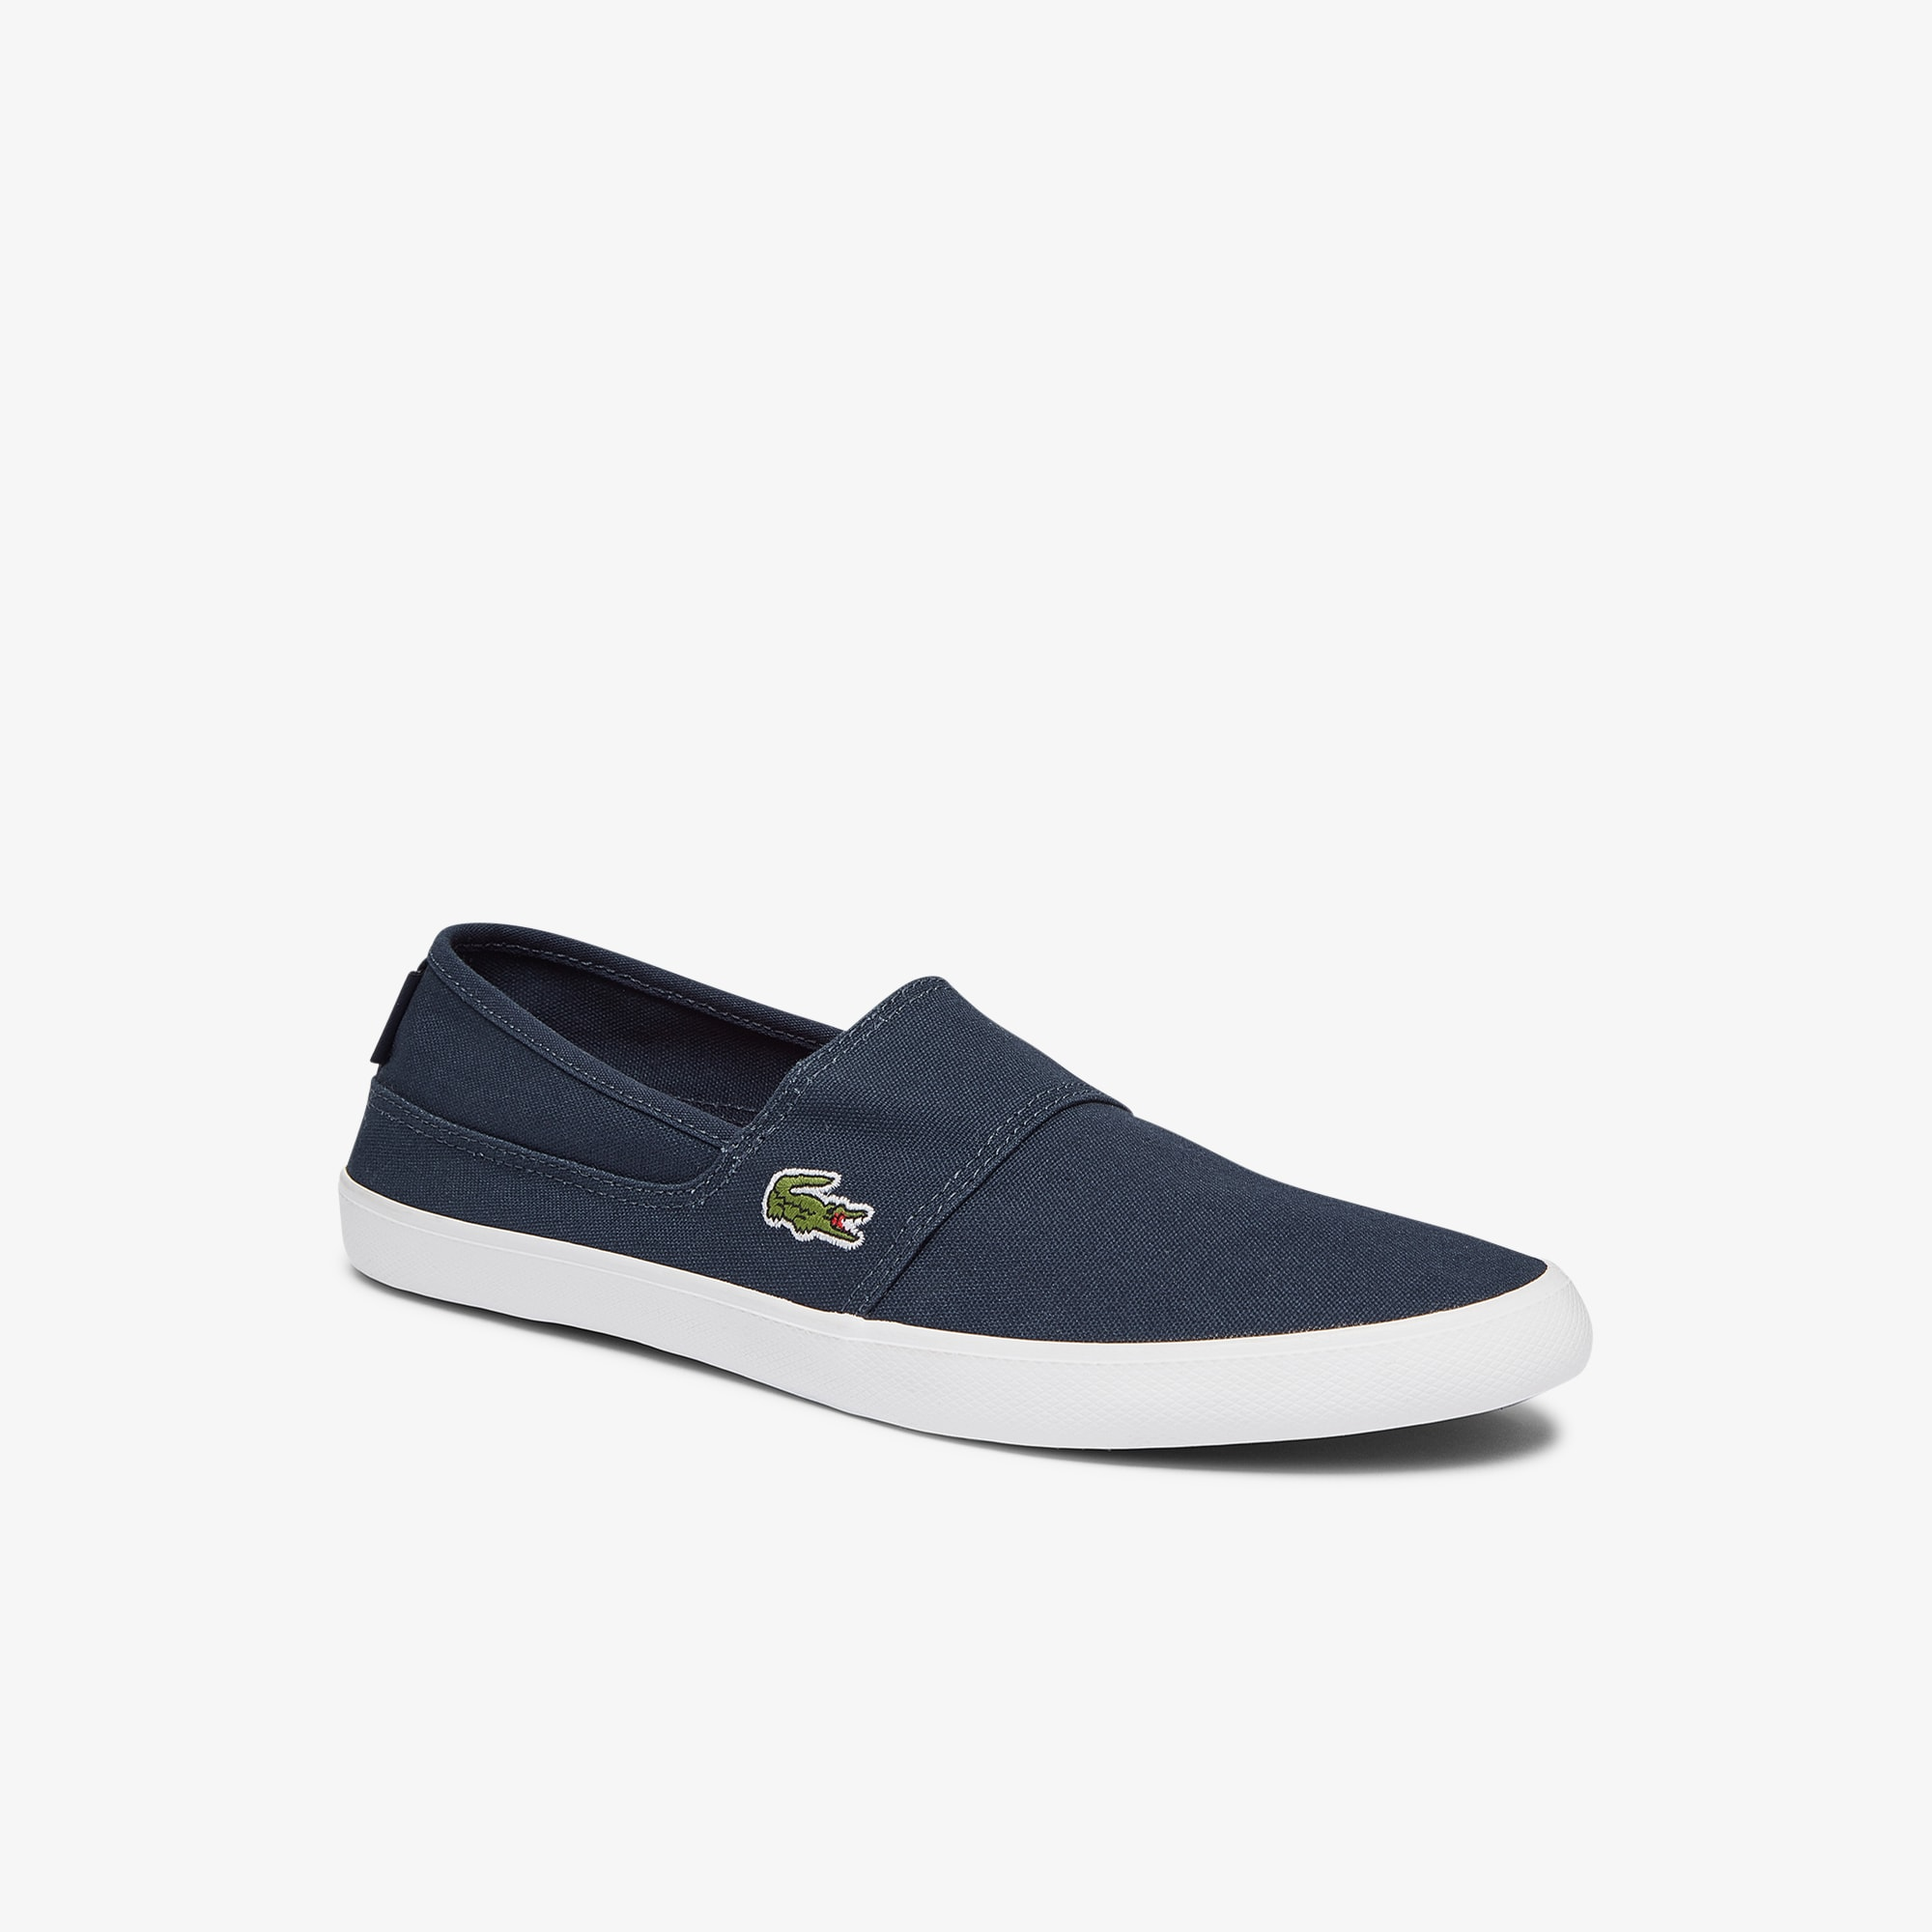 038f461265 Chaussures en toile | Chaussures Homme | LACOSTE